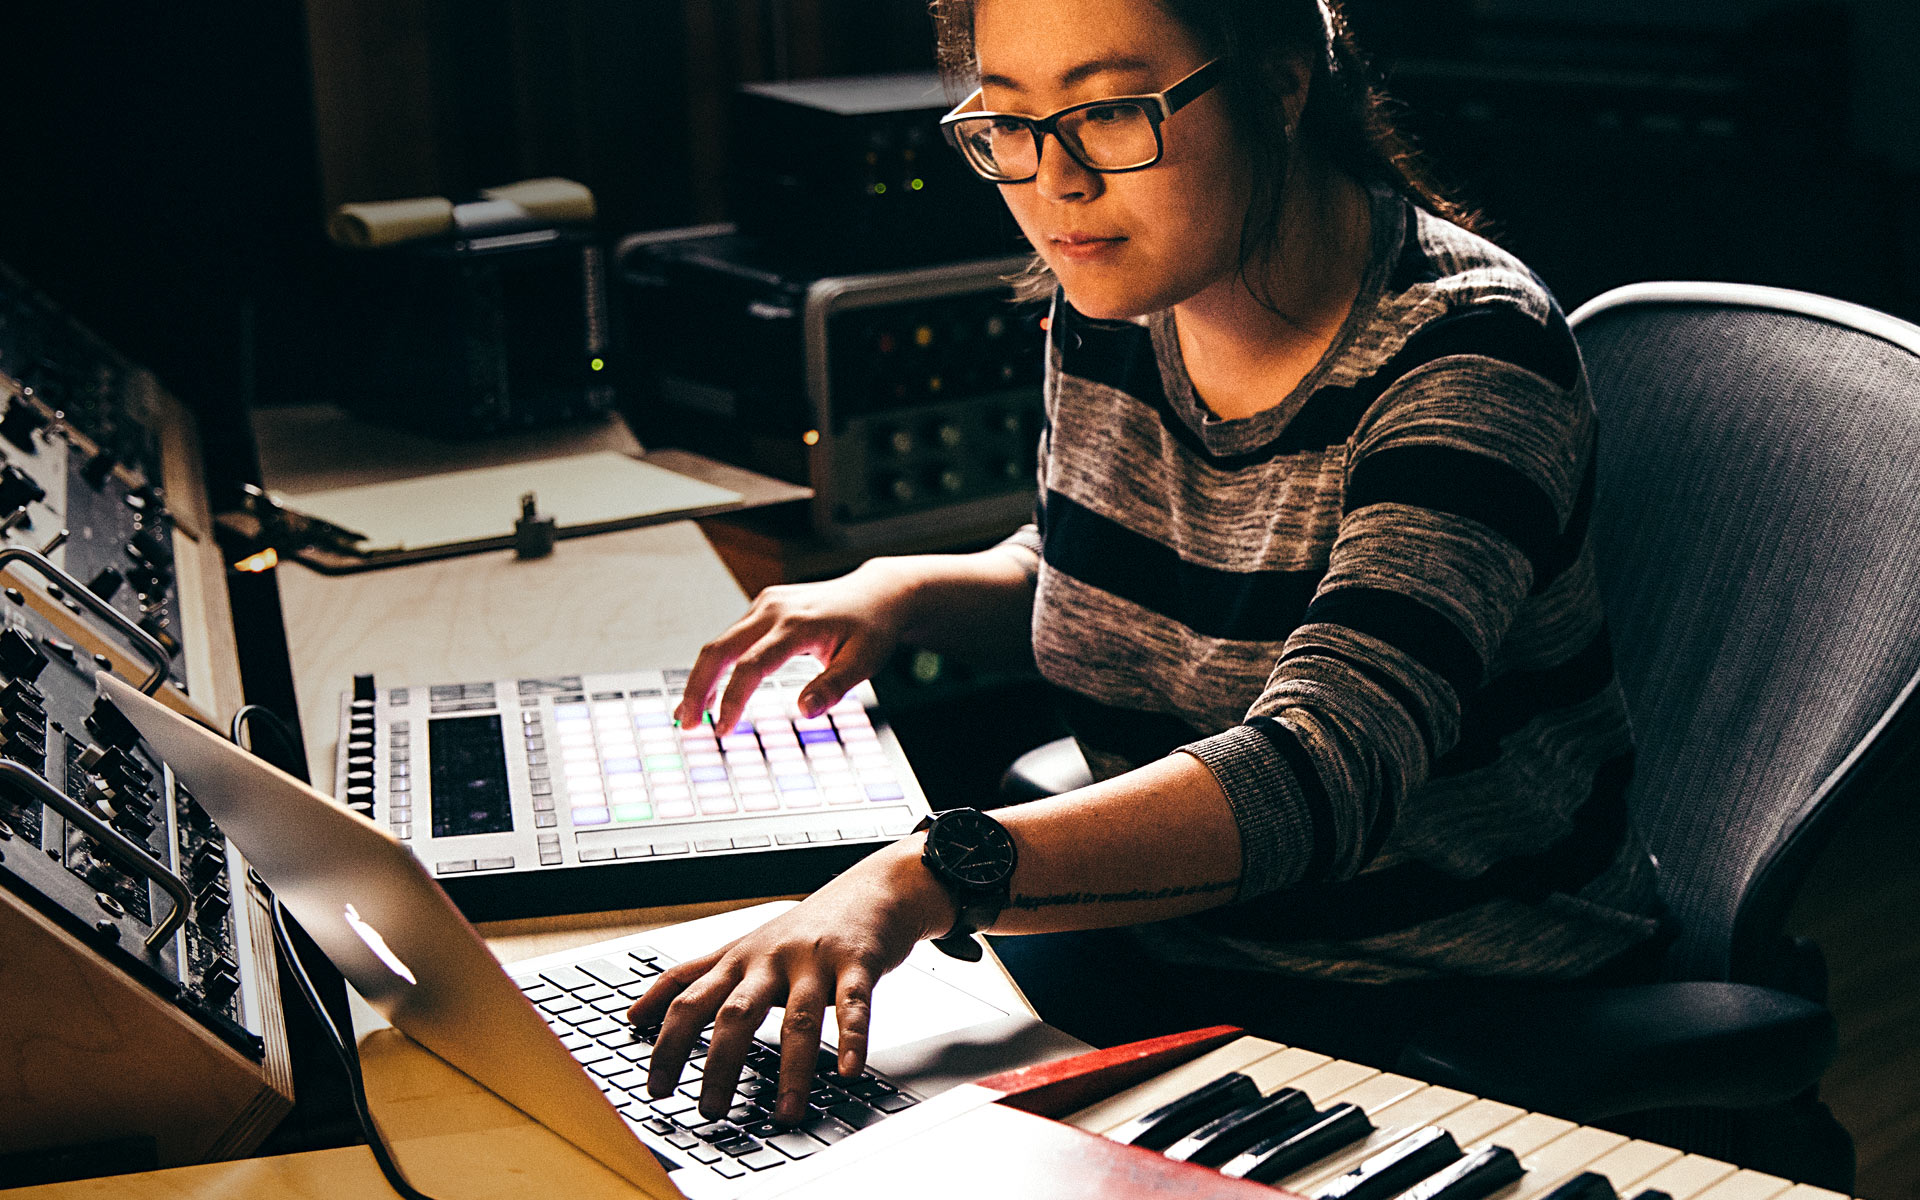 Woman scoring music for video games.